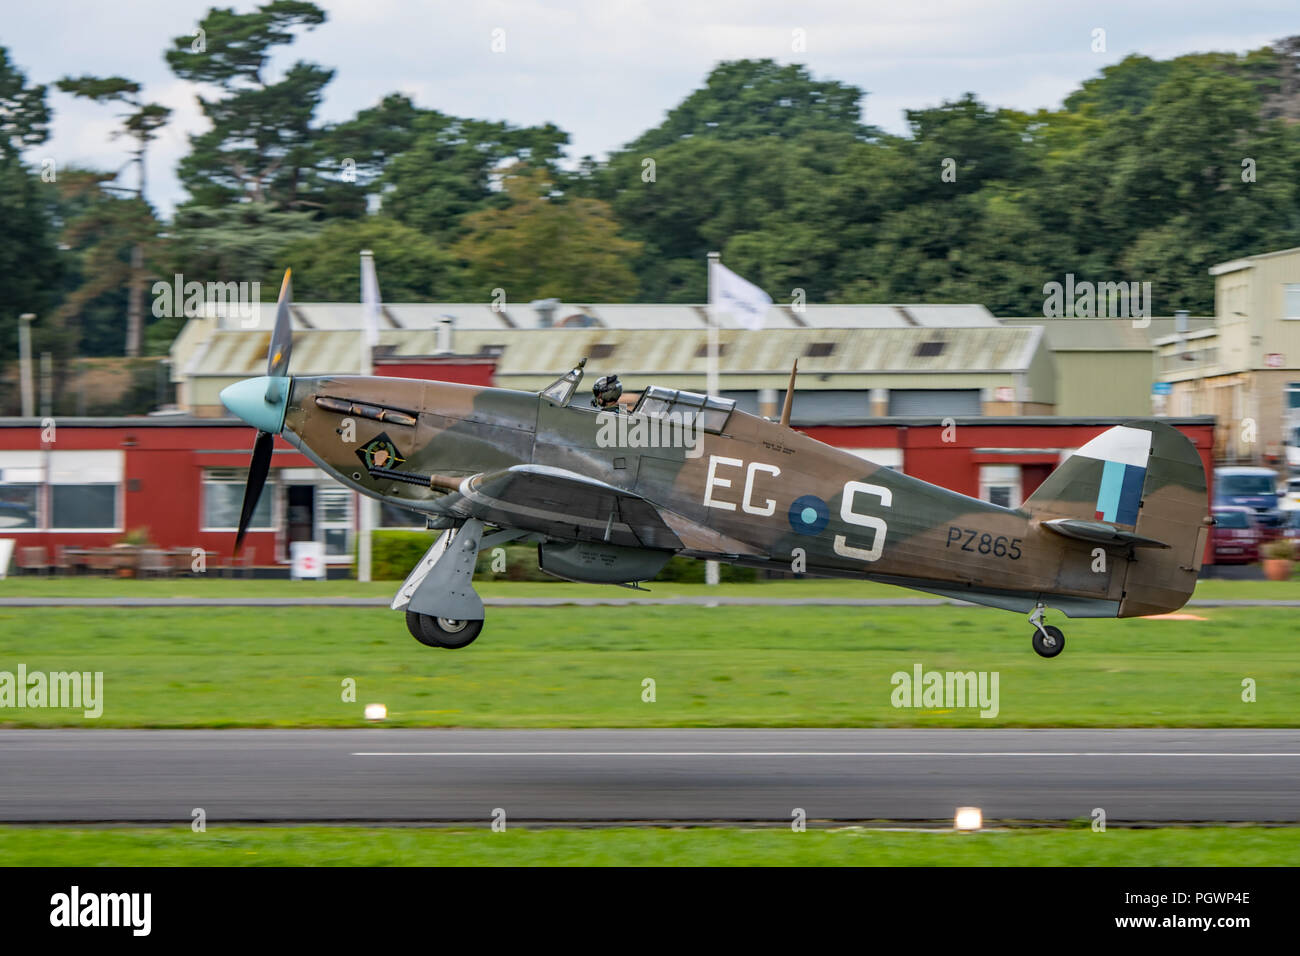 RAF BBMF Hawker Hurricane fighter aircraft taking off from Dunsfold Aerodrome, UK during the Wings & Wheels Airshow on the 25th August 2018. - Stock Image